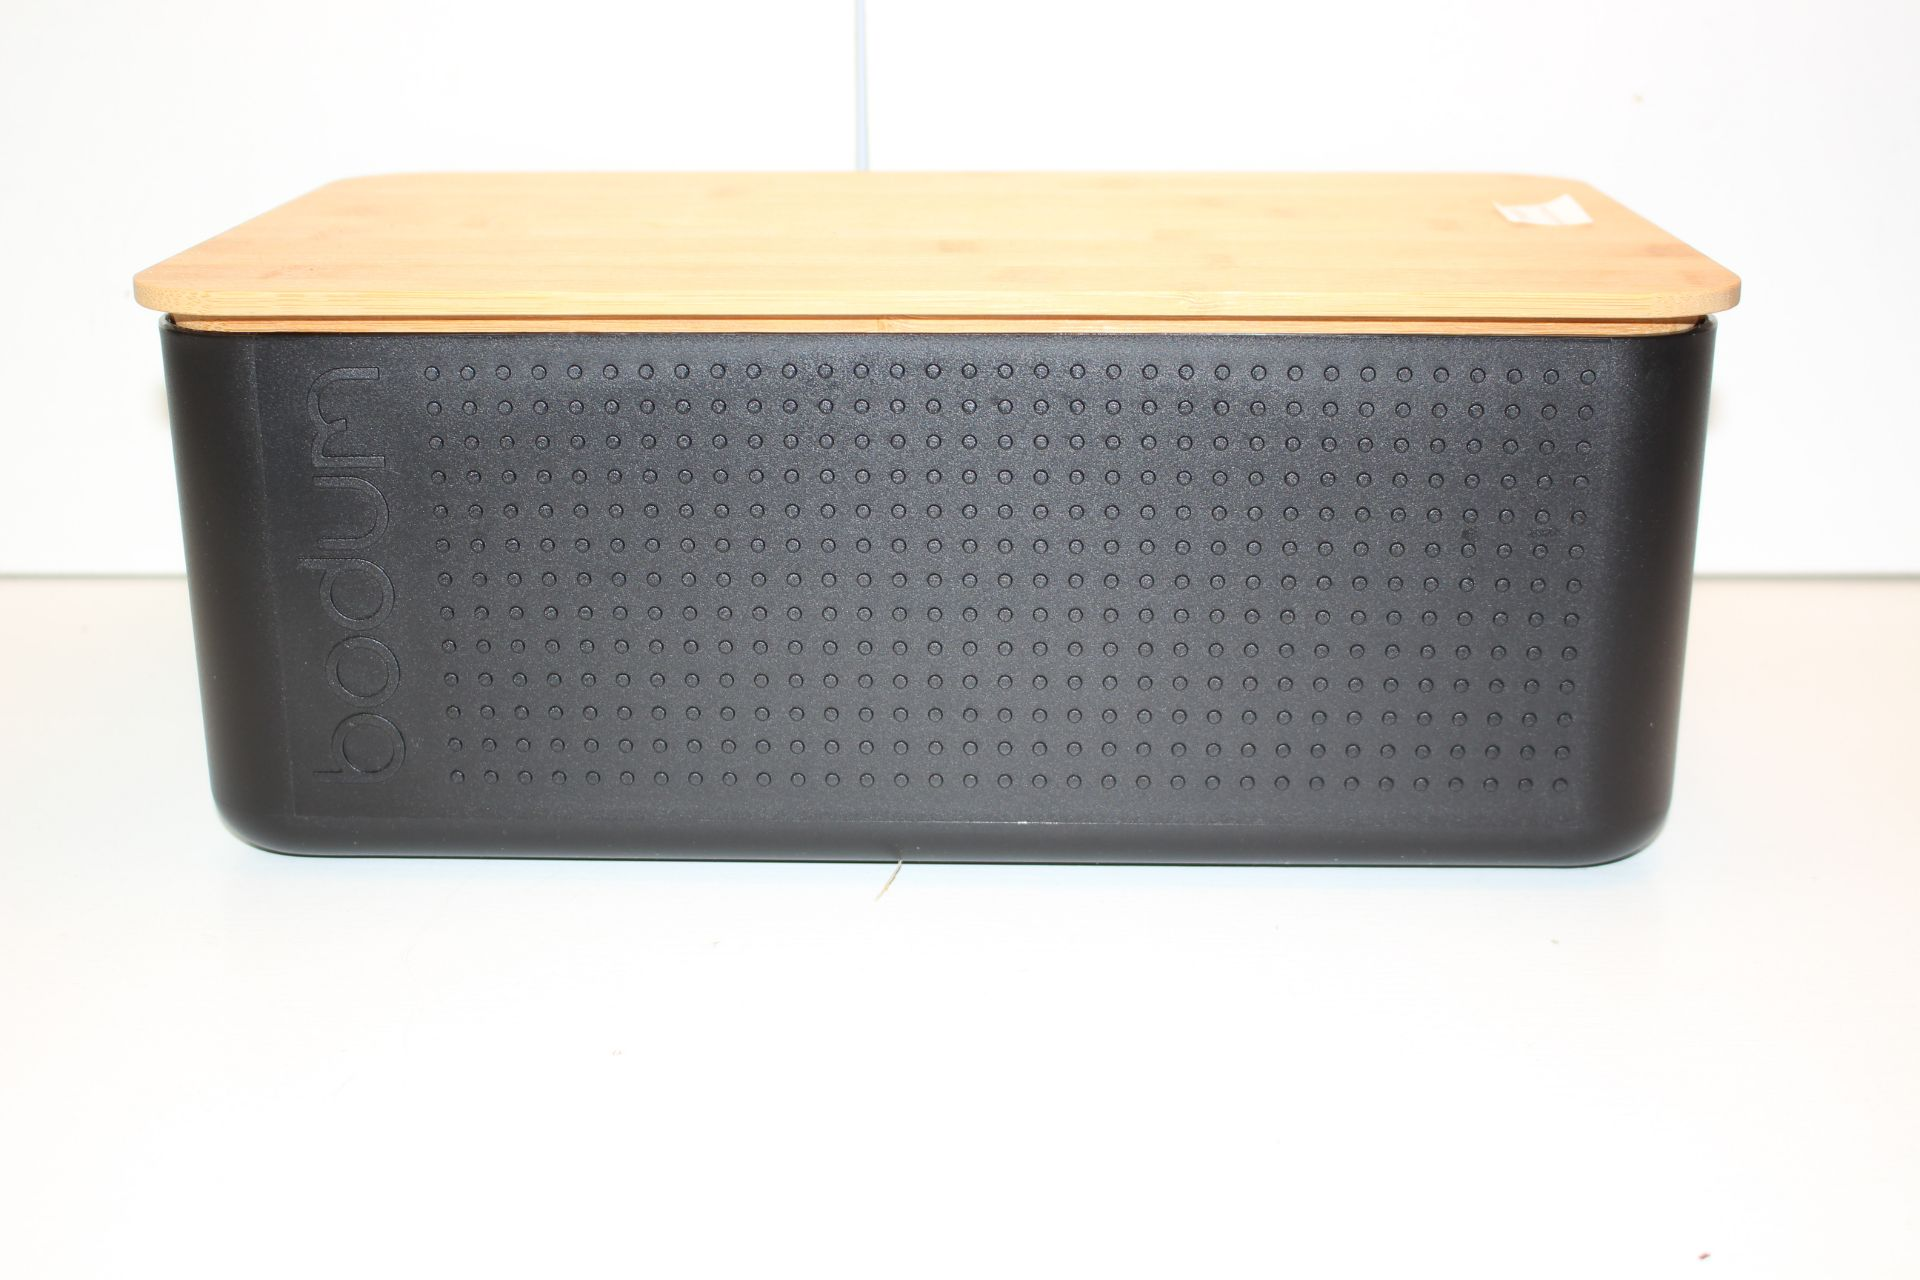 UNBOXED BODEM BLACK BREAMBIN WITH WOODEN LIDCondition ReportAppraisal Available on Request- All